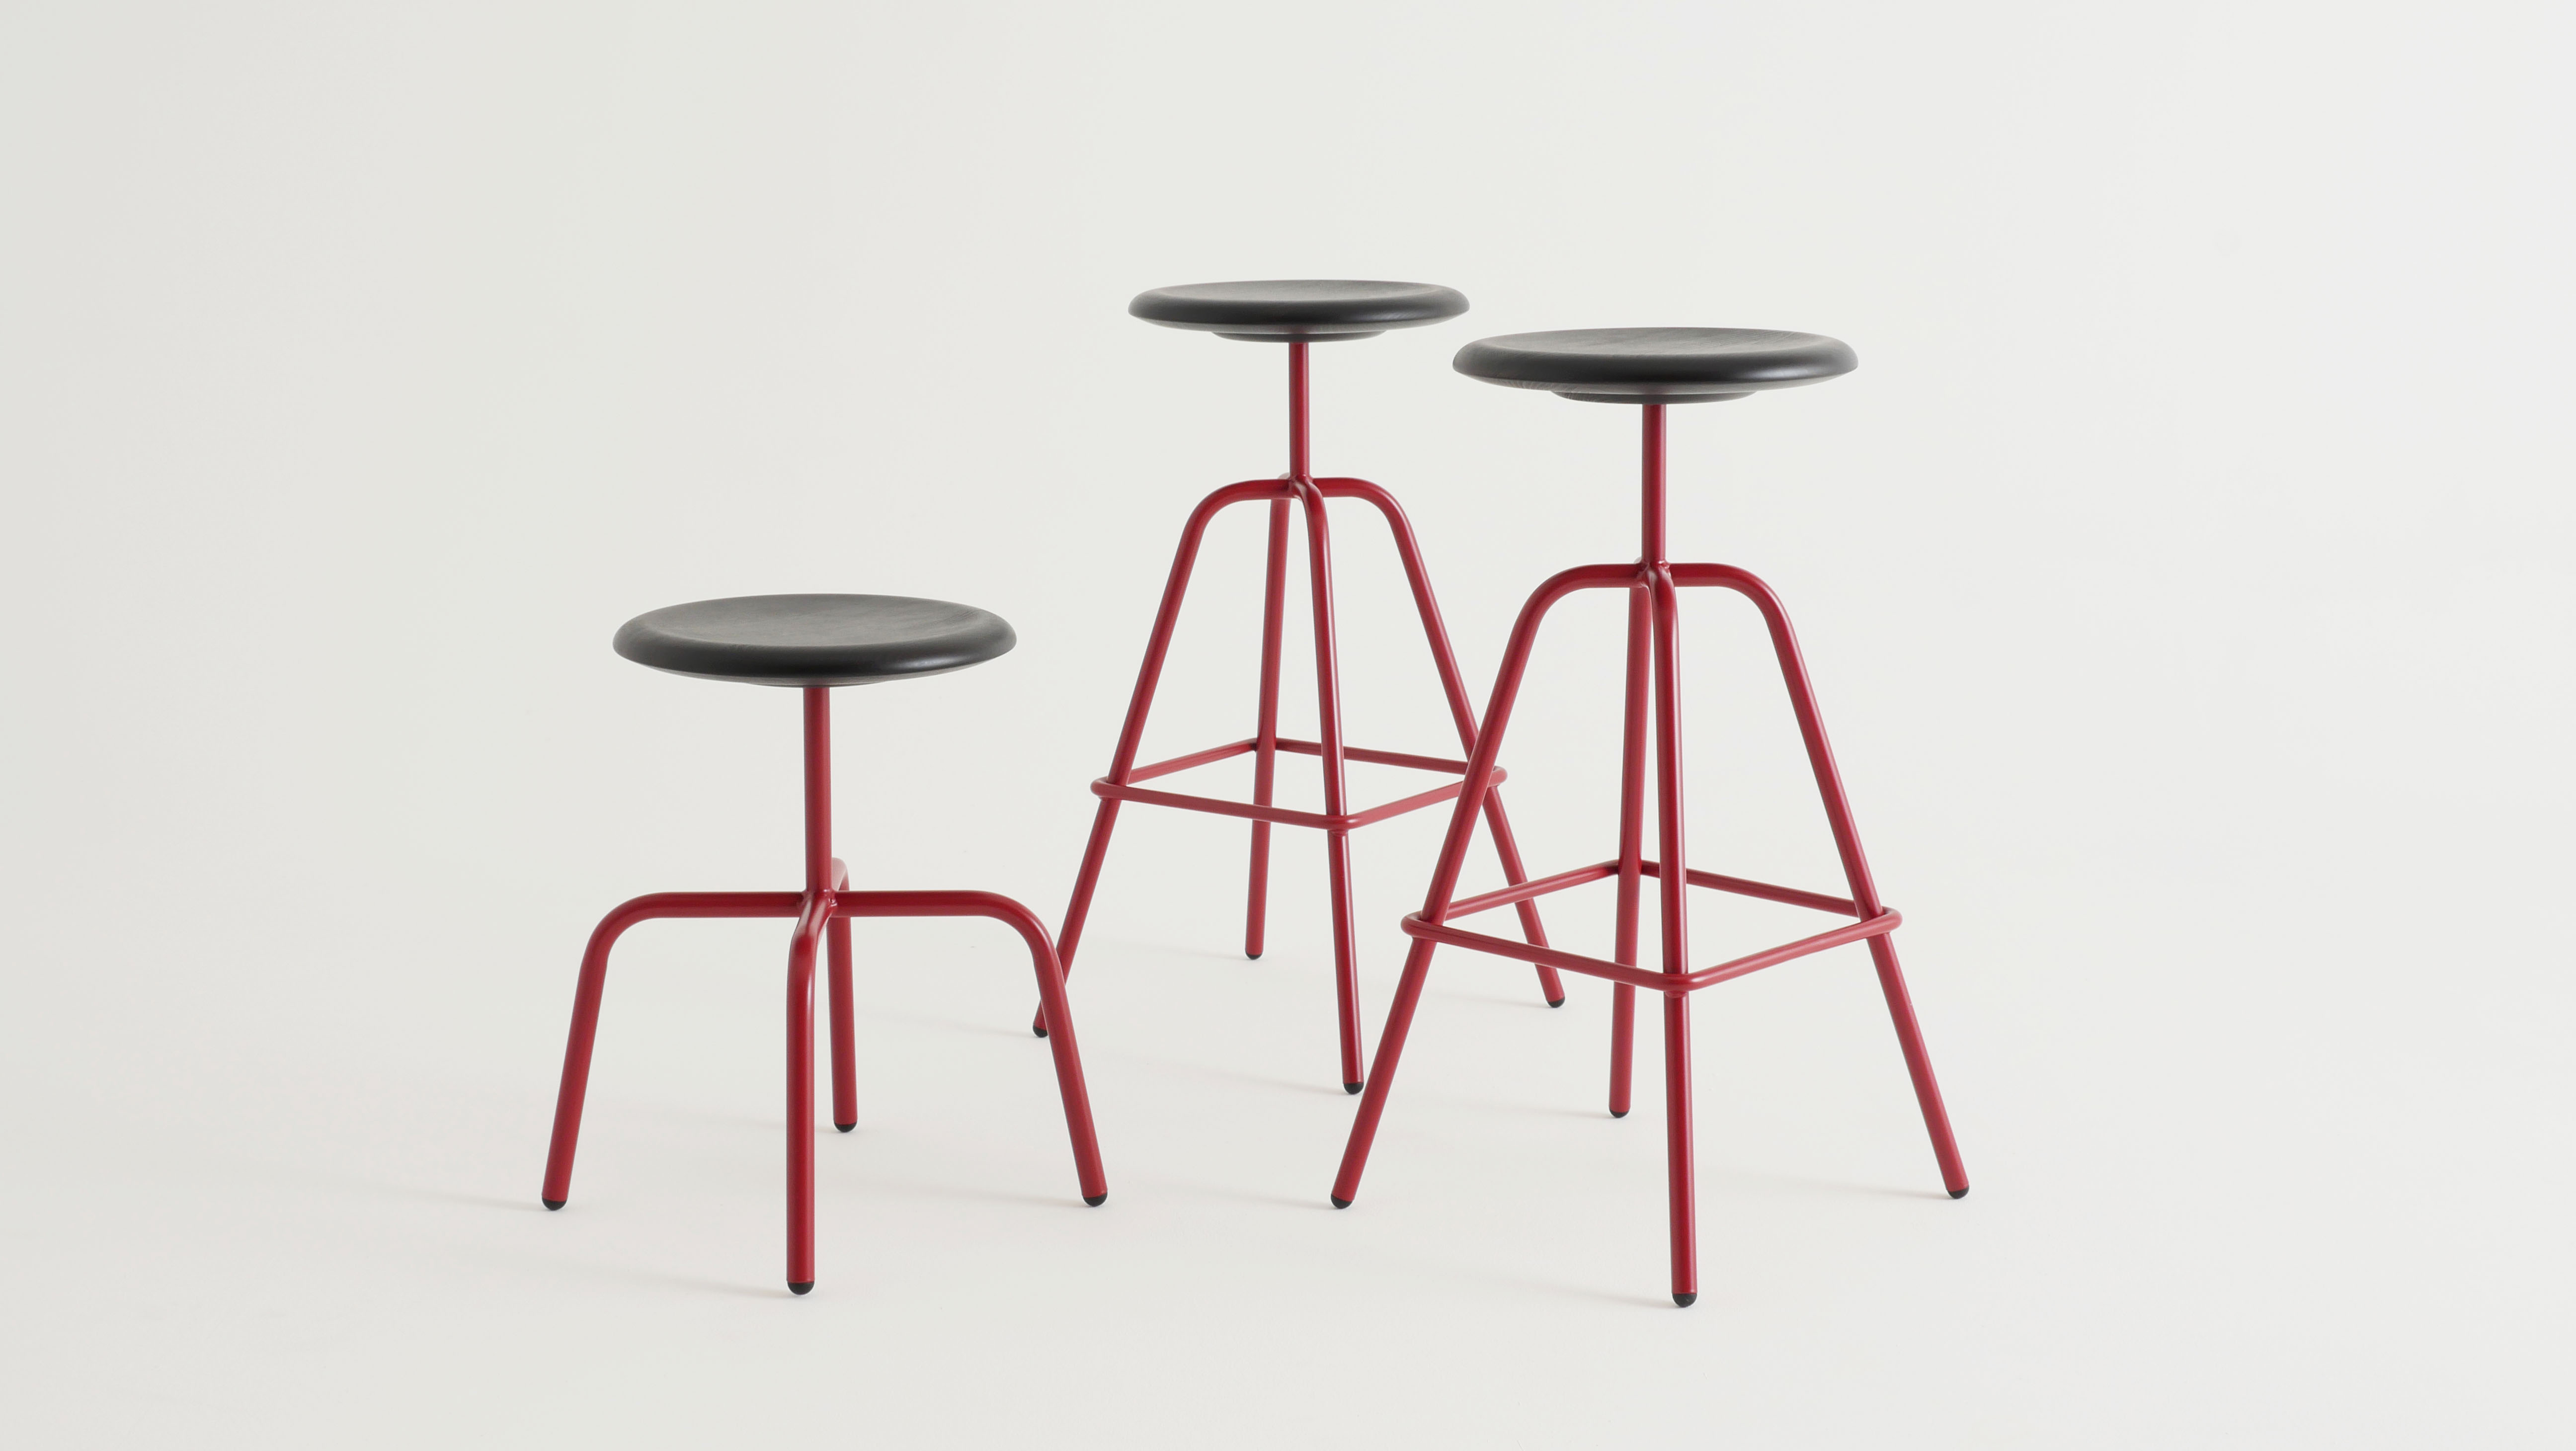 Herrenberger stool in three dimension, red powder coated for Viu store